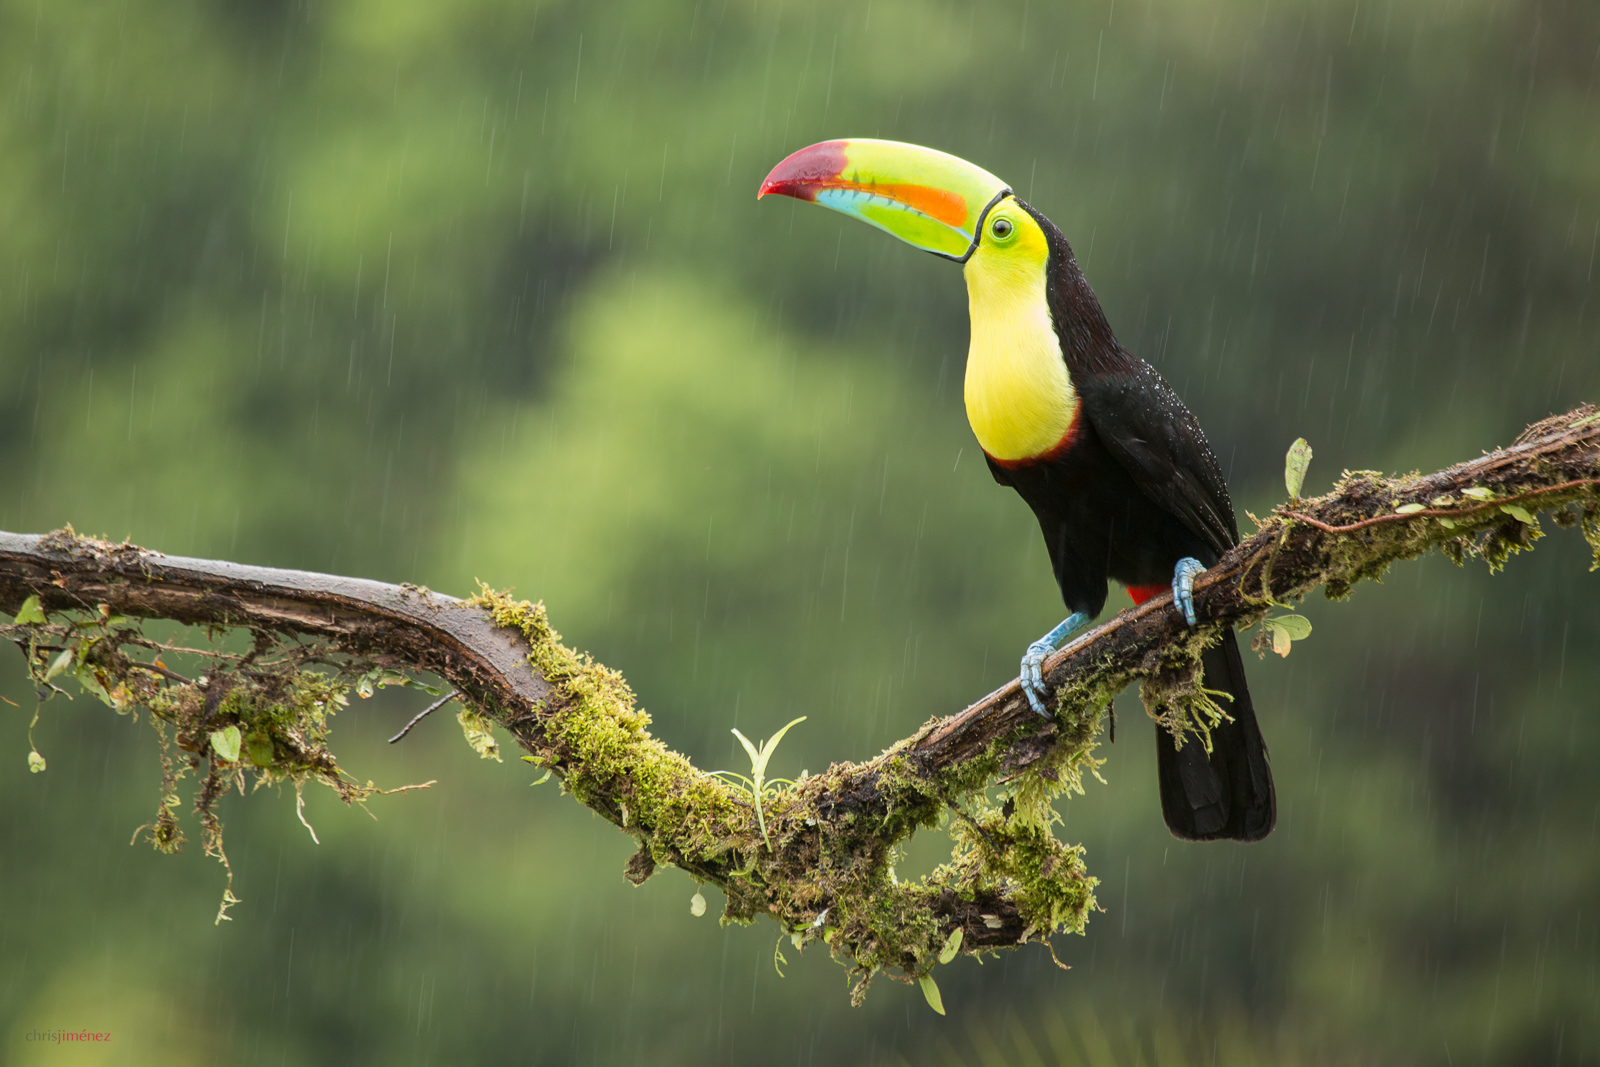 Keel-billed Toucan (Ramphastos sulfuratus) perched under the rain at the low lands of Costa Rica